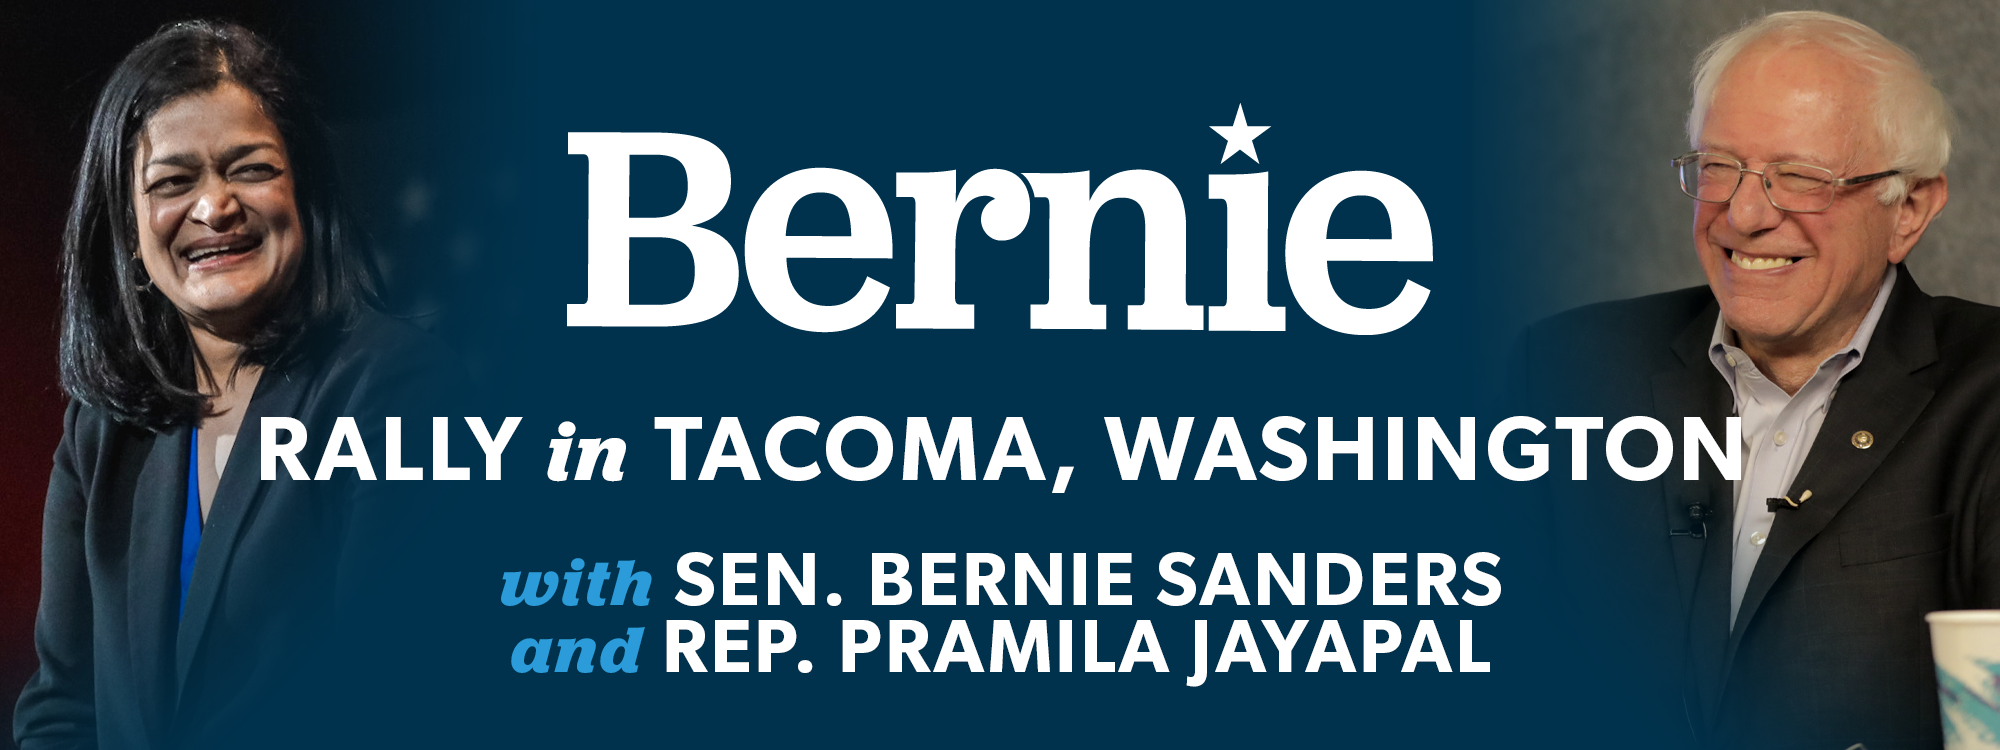 Bernie 2020 Rally in Tacoma